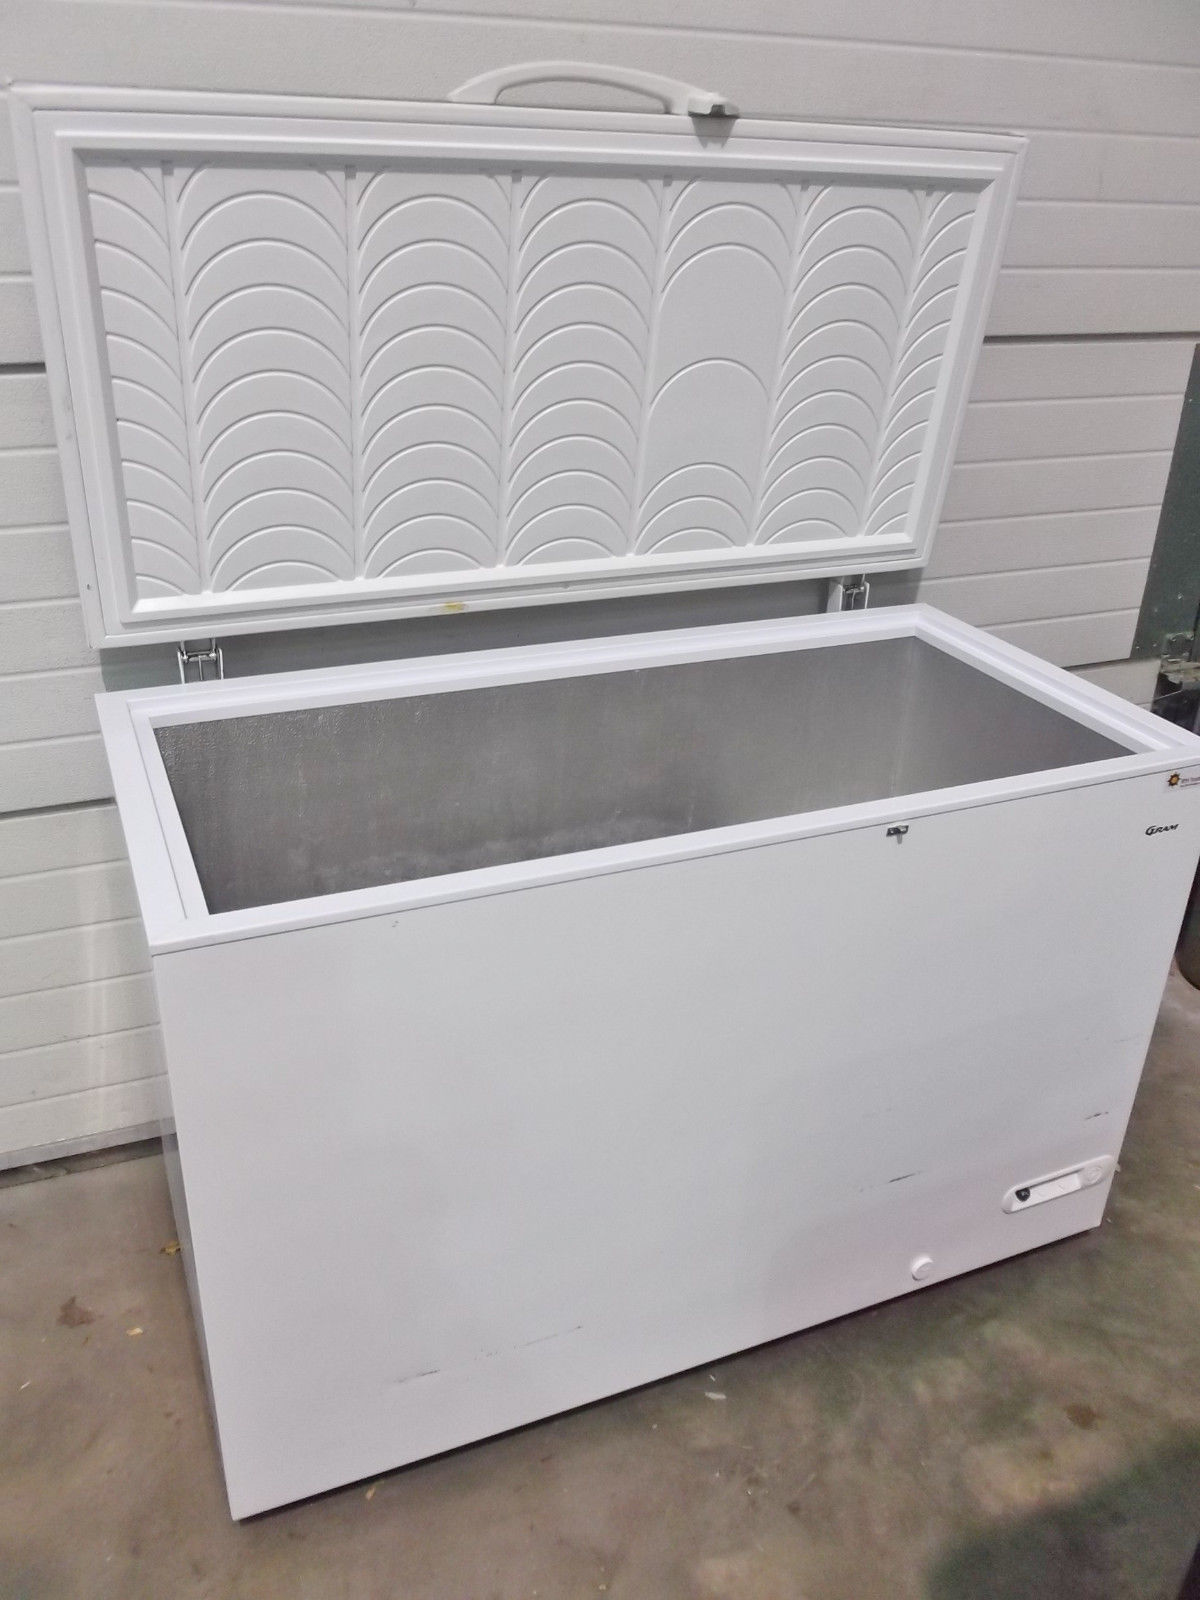 results in fridges and freezers in south africa